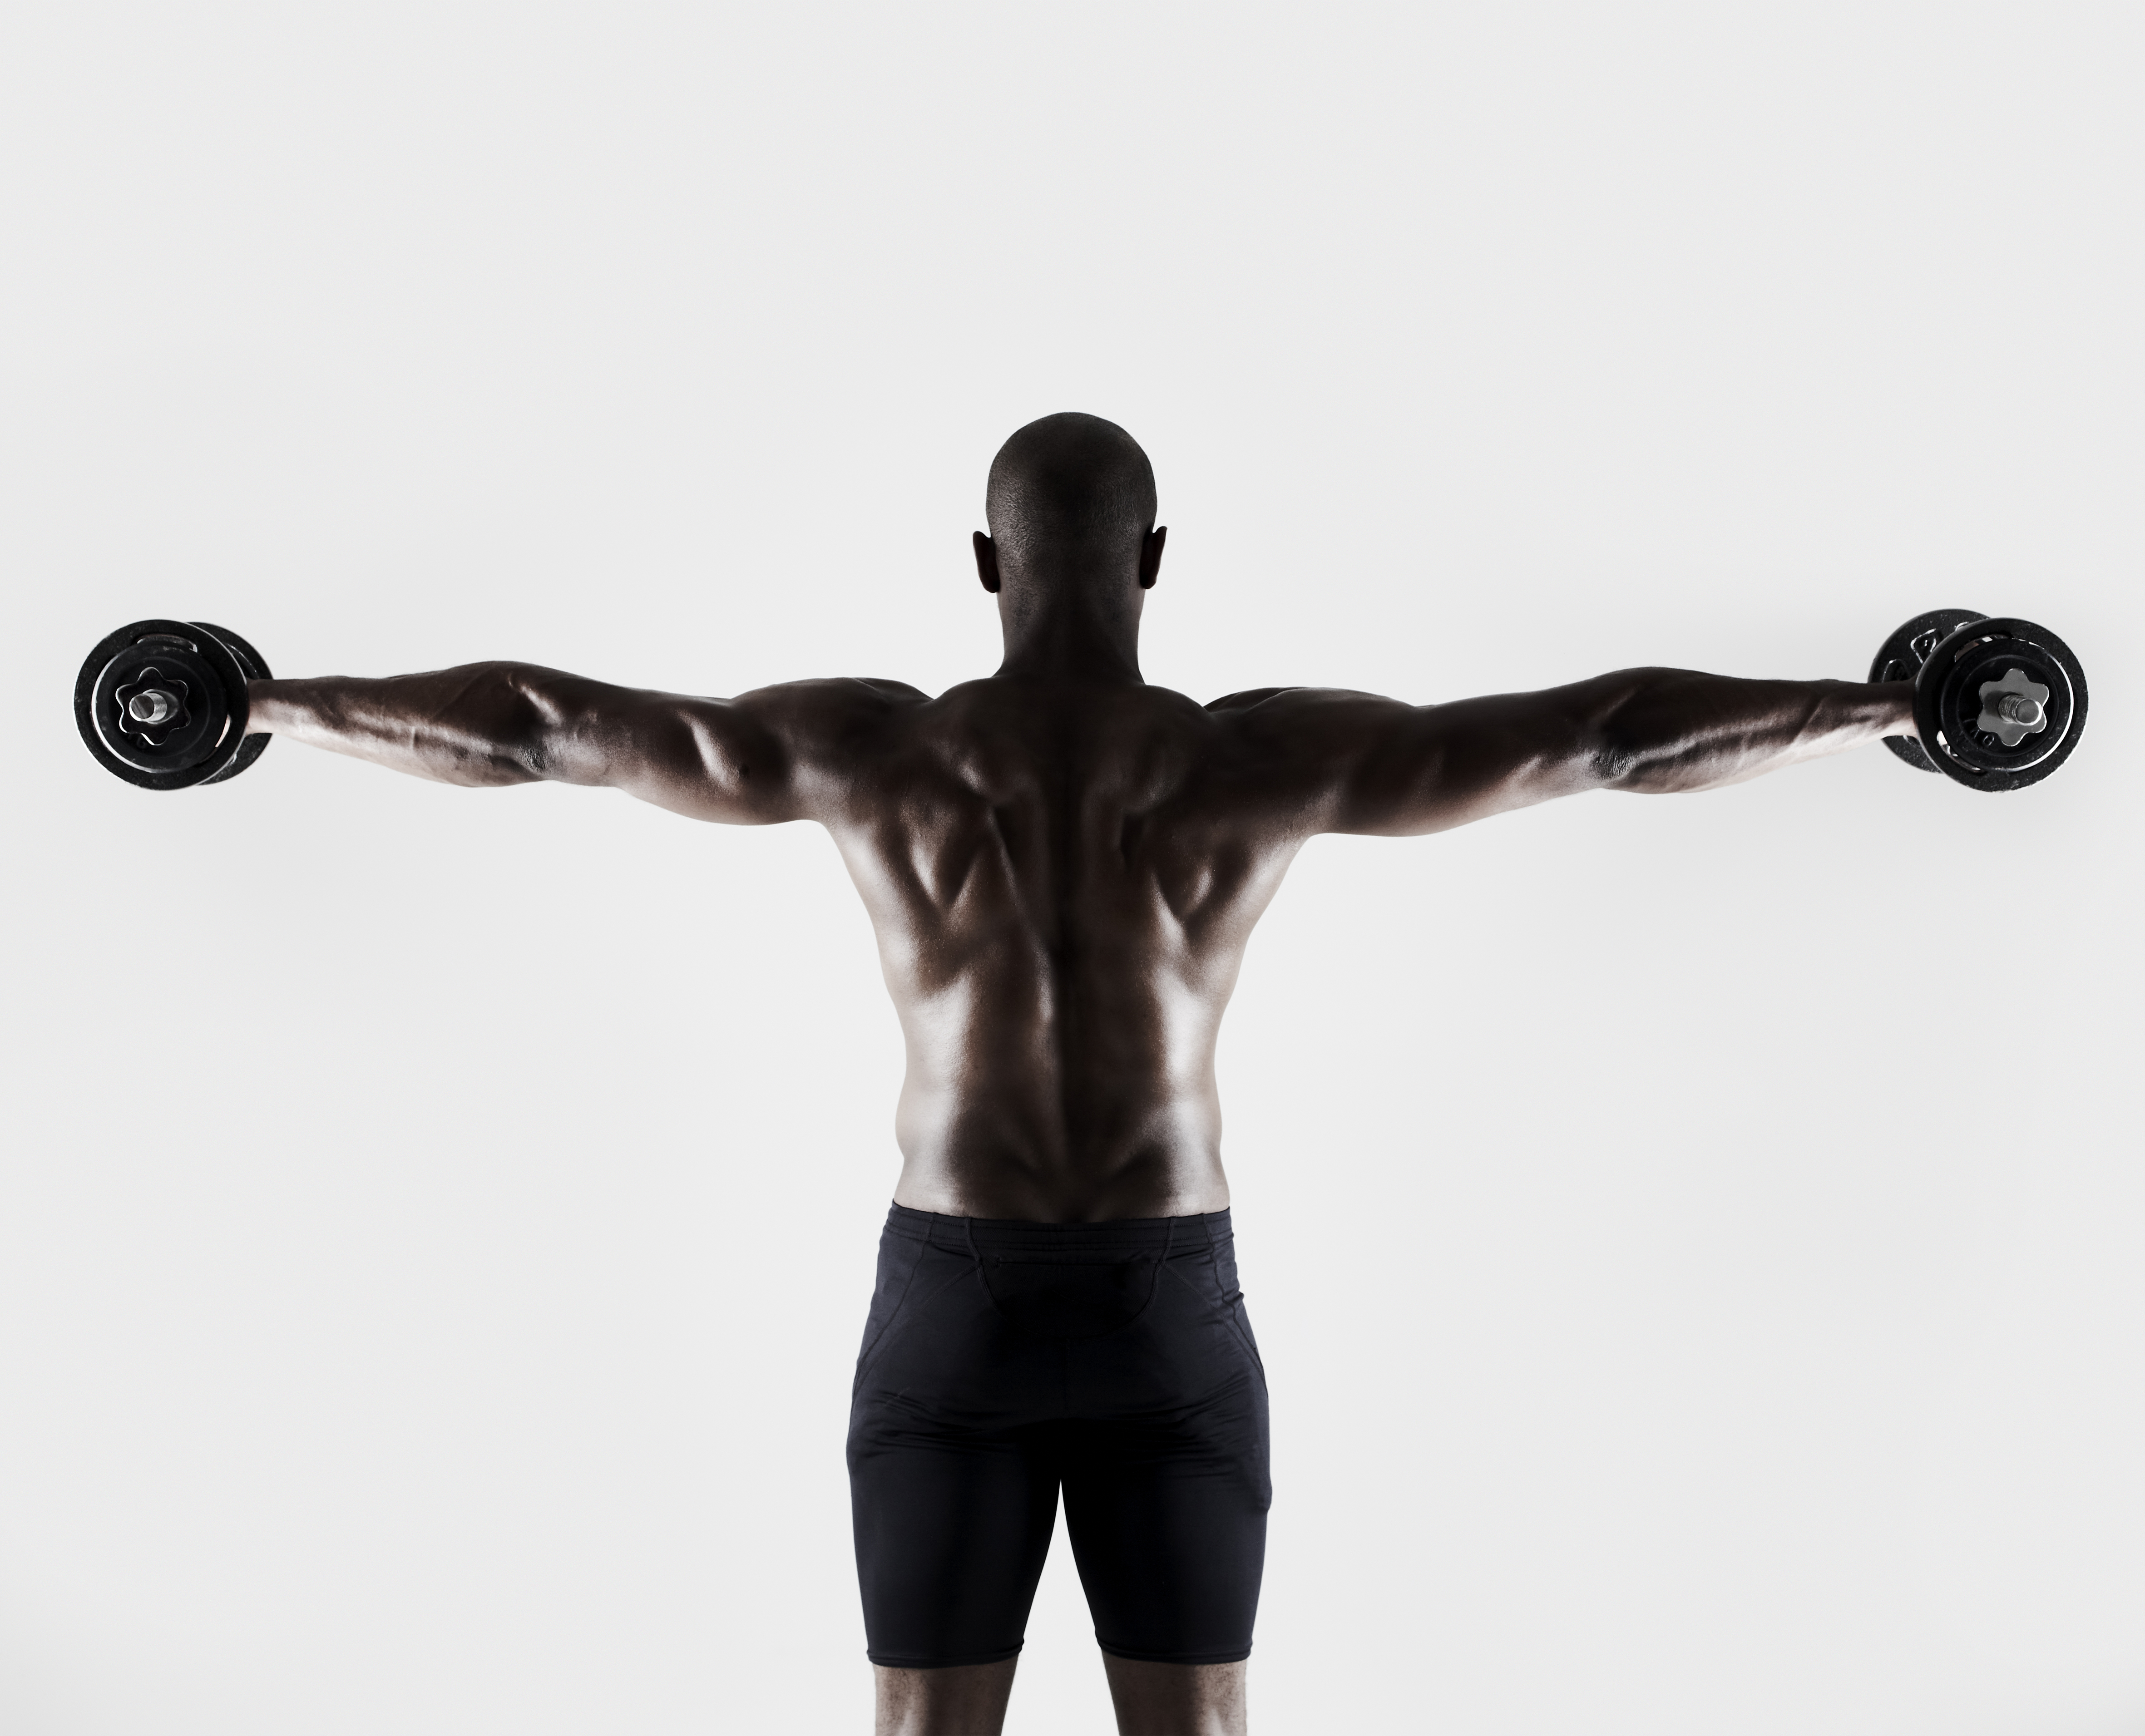 High Reps or Heavy Weights: What's the Best Way to Get Stronger?